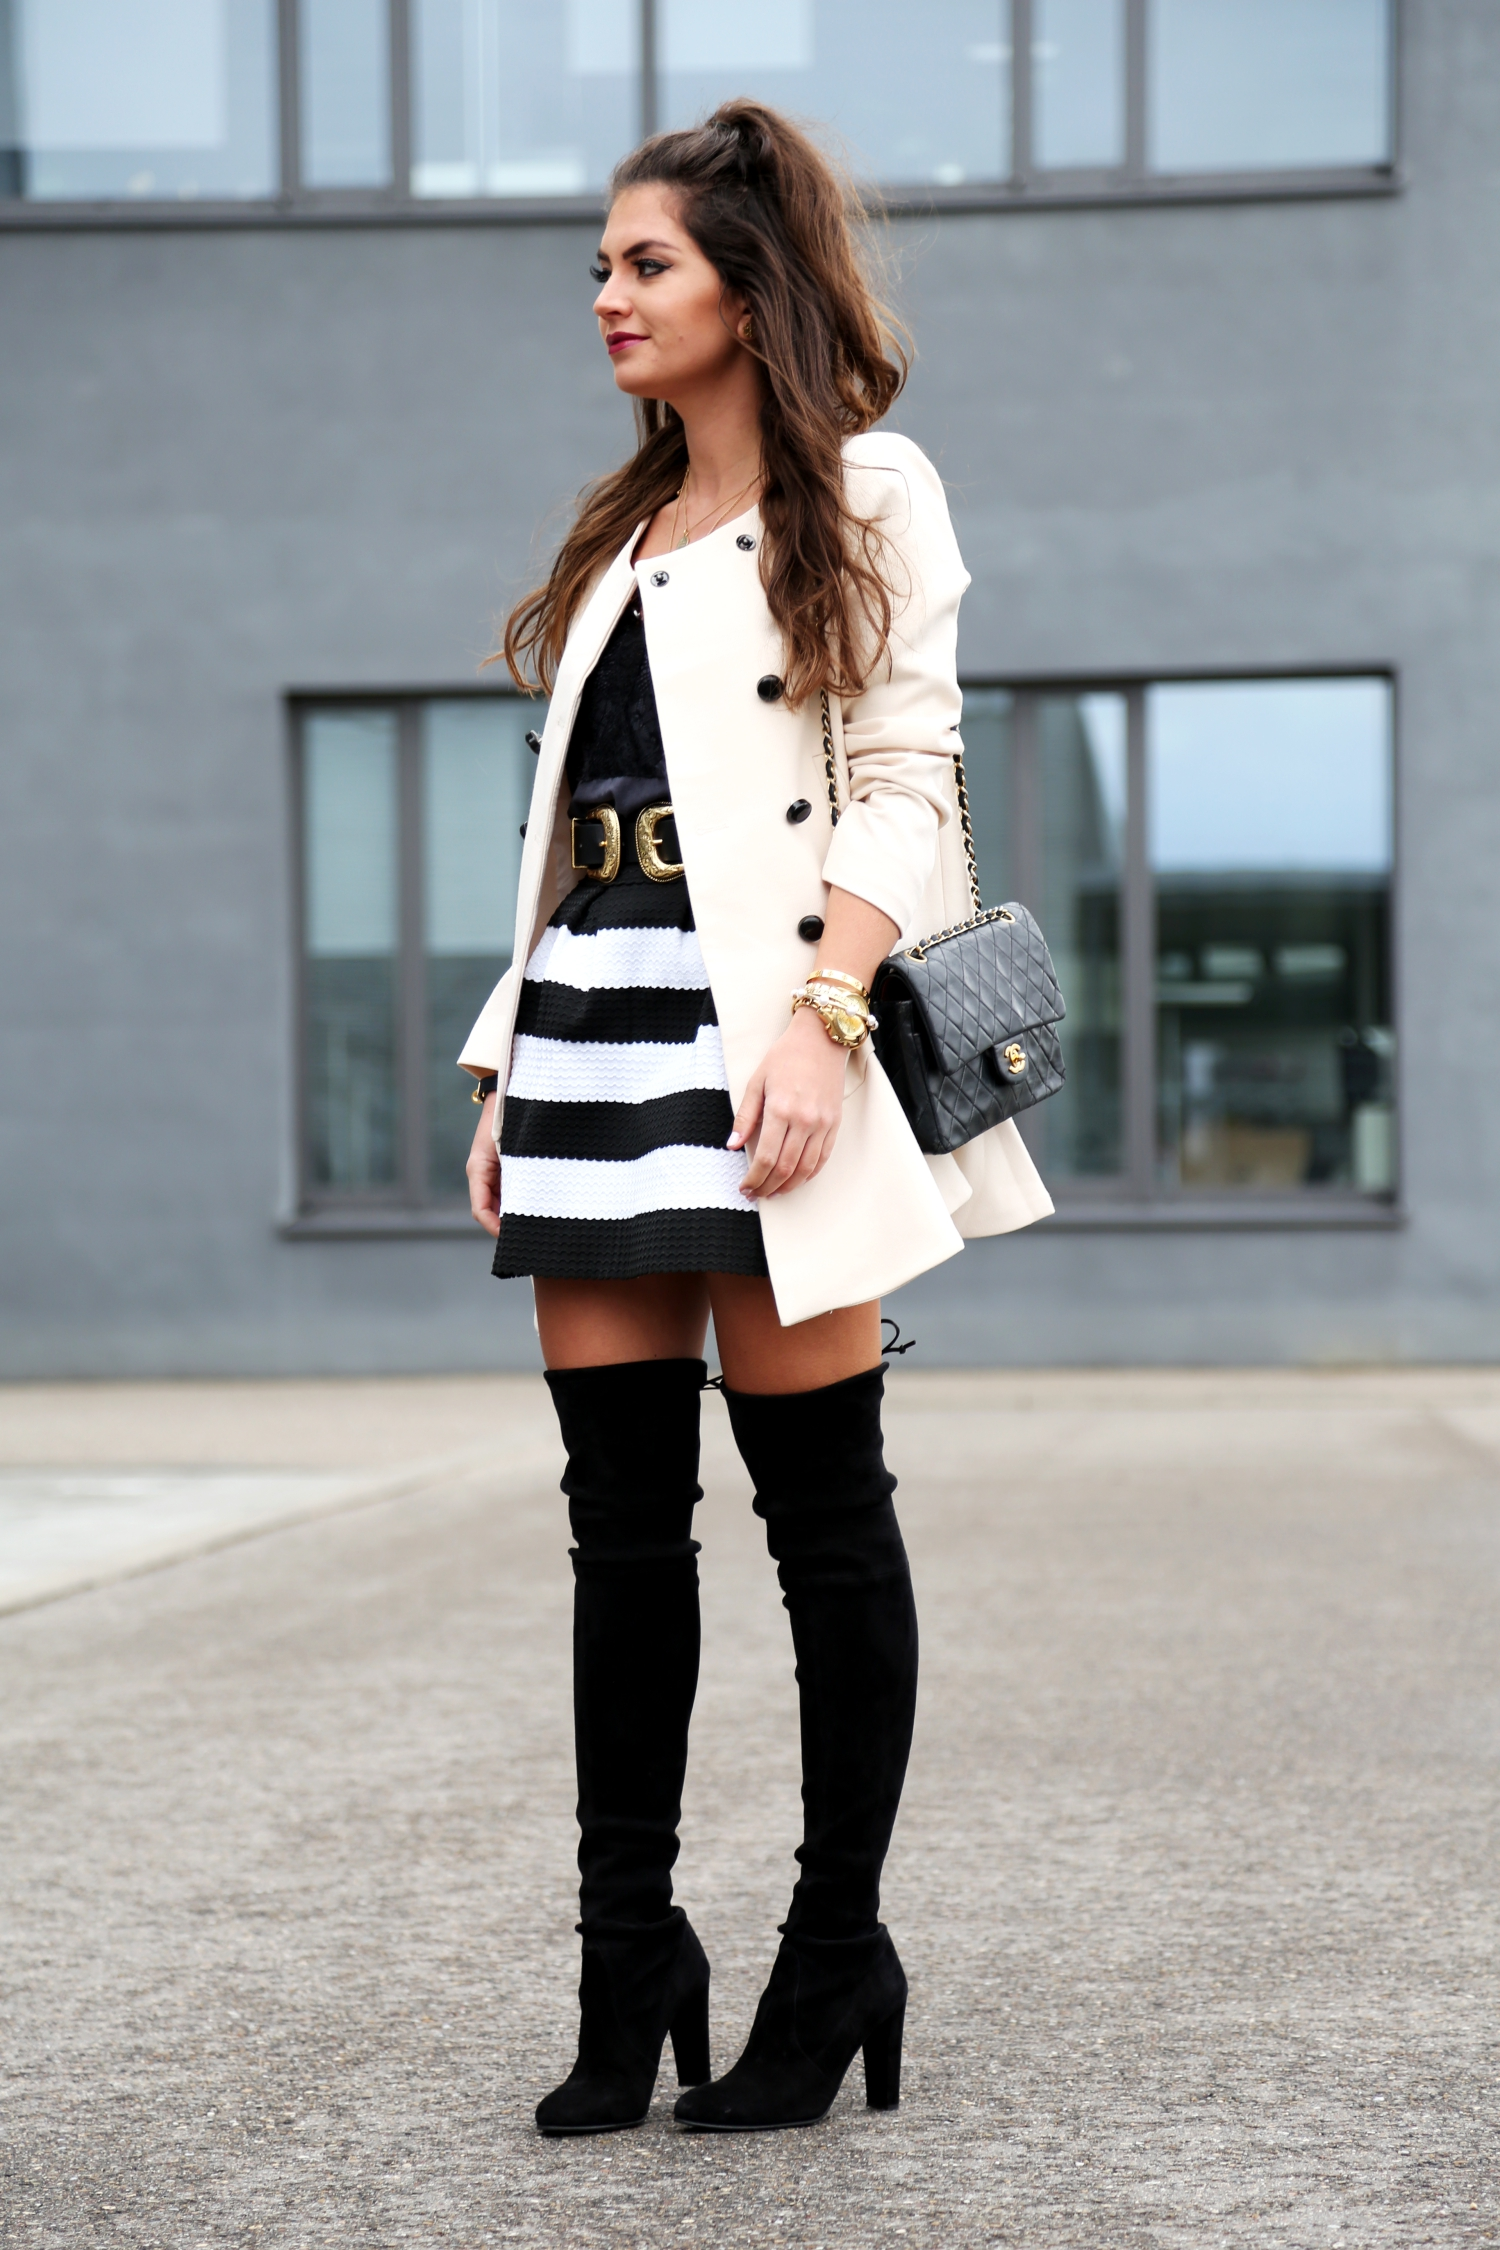 outfit-fashionhippieloves-spring-look-stuart-weitzman-overknees